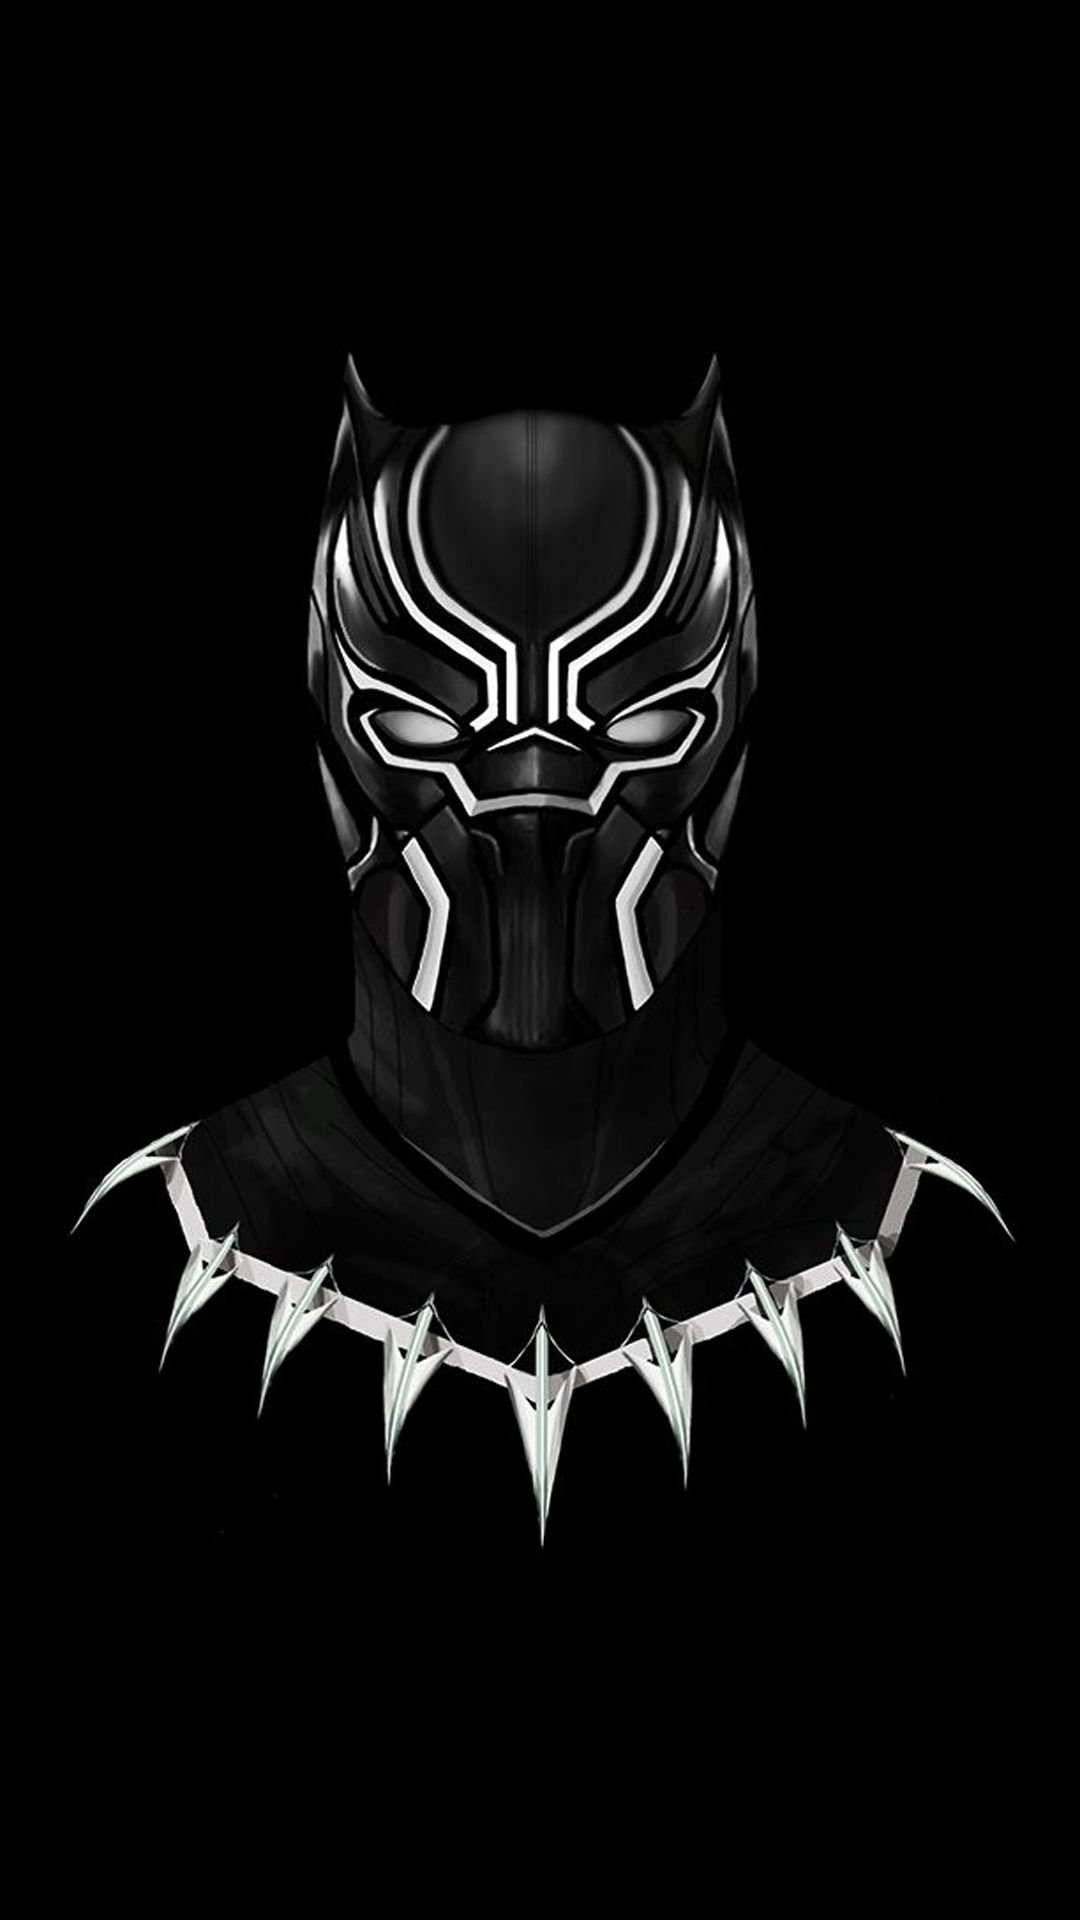 Black Panther Wallpapers Top Free Black Panther